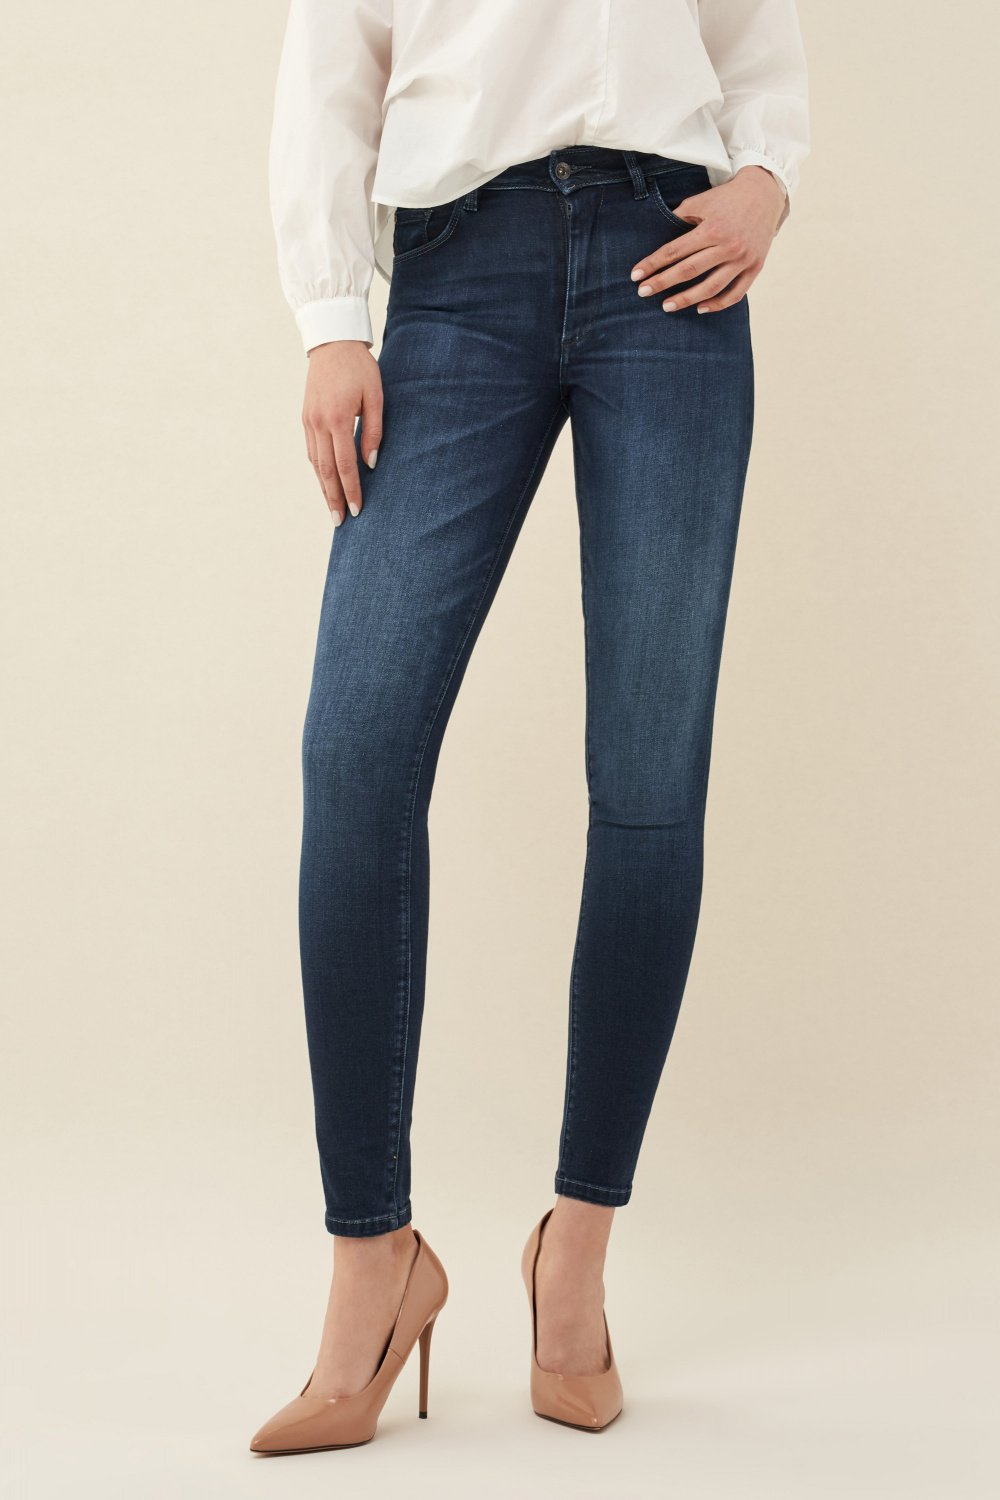 Push Up Wonder skinny dark jeans - Salsa